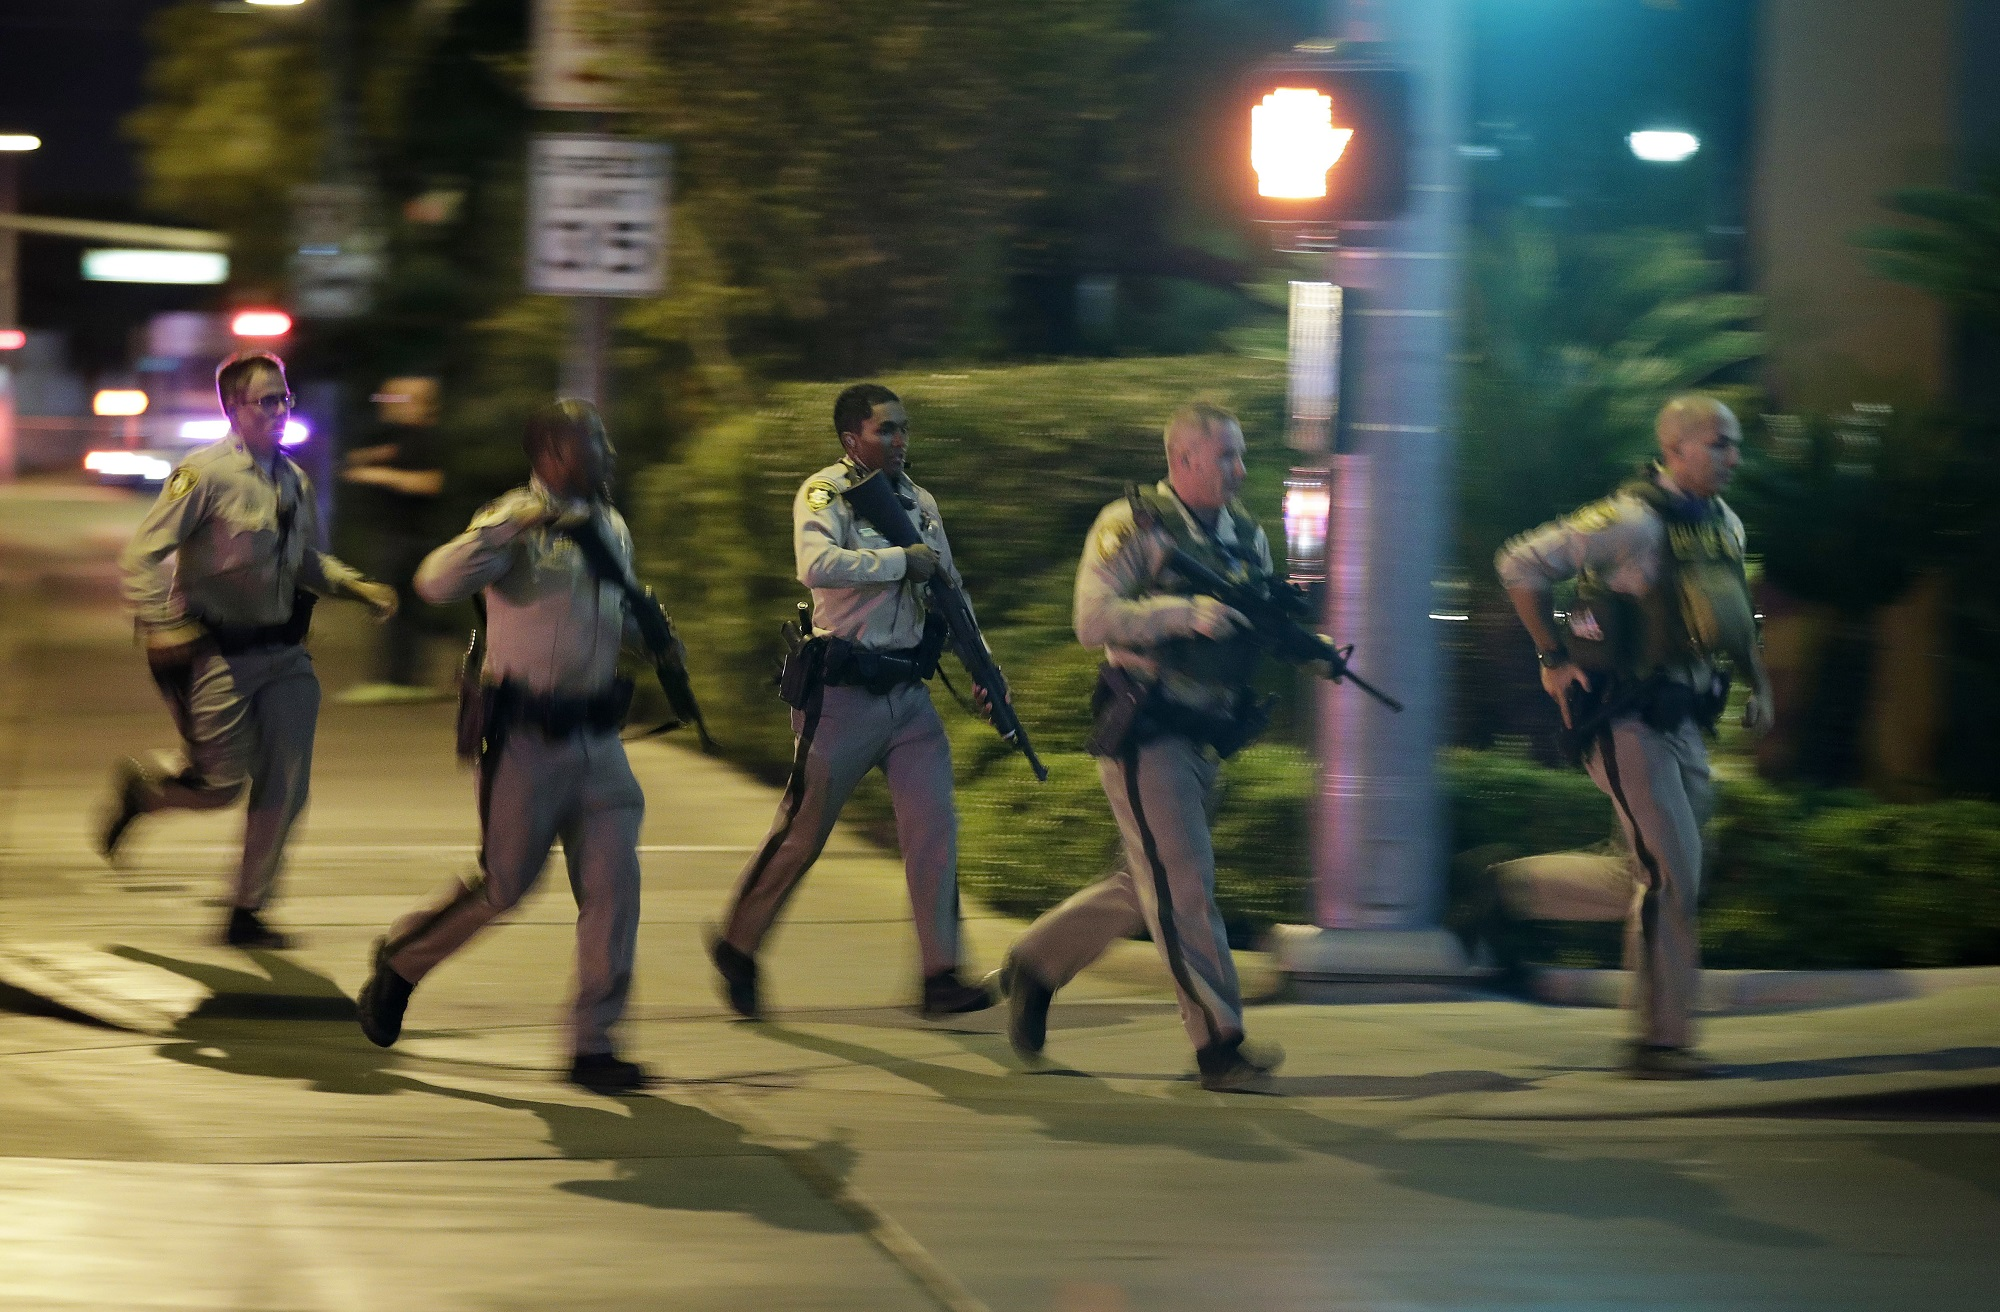 Blurred image of heavily armed police officers running